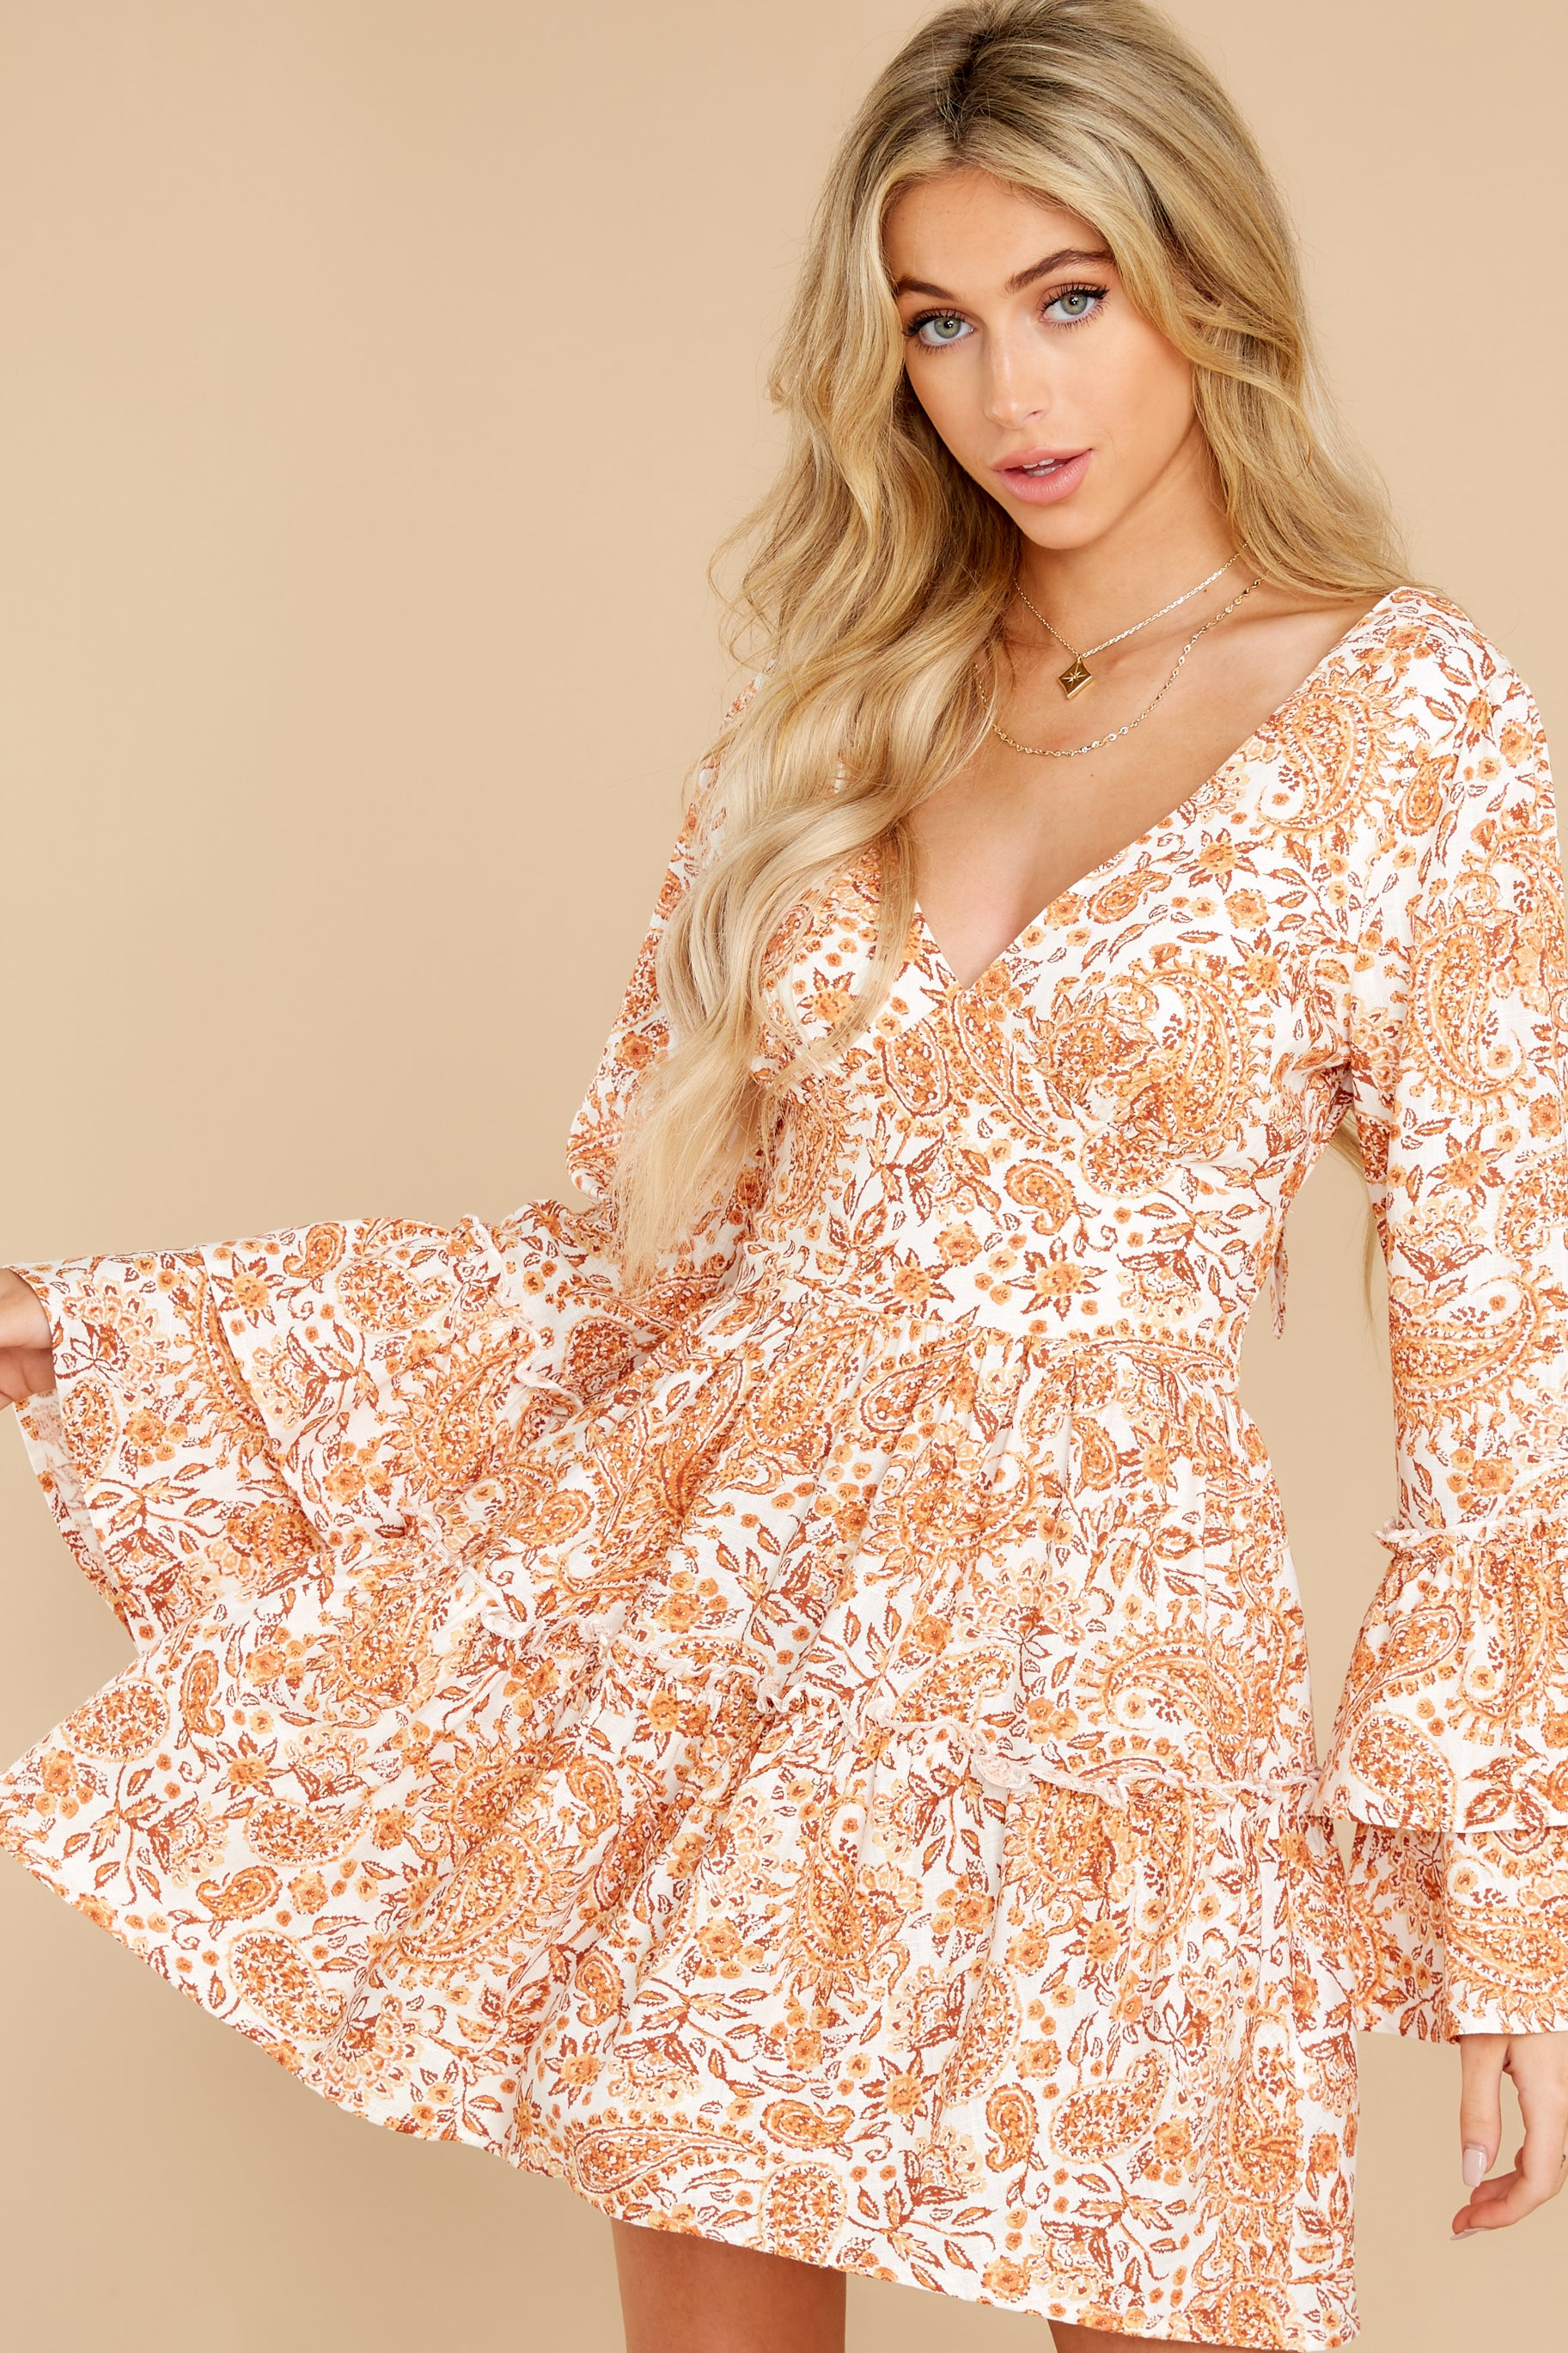 7 Sunrise Paisley Orange Mini Dress at reddress.com